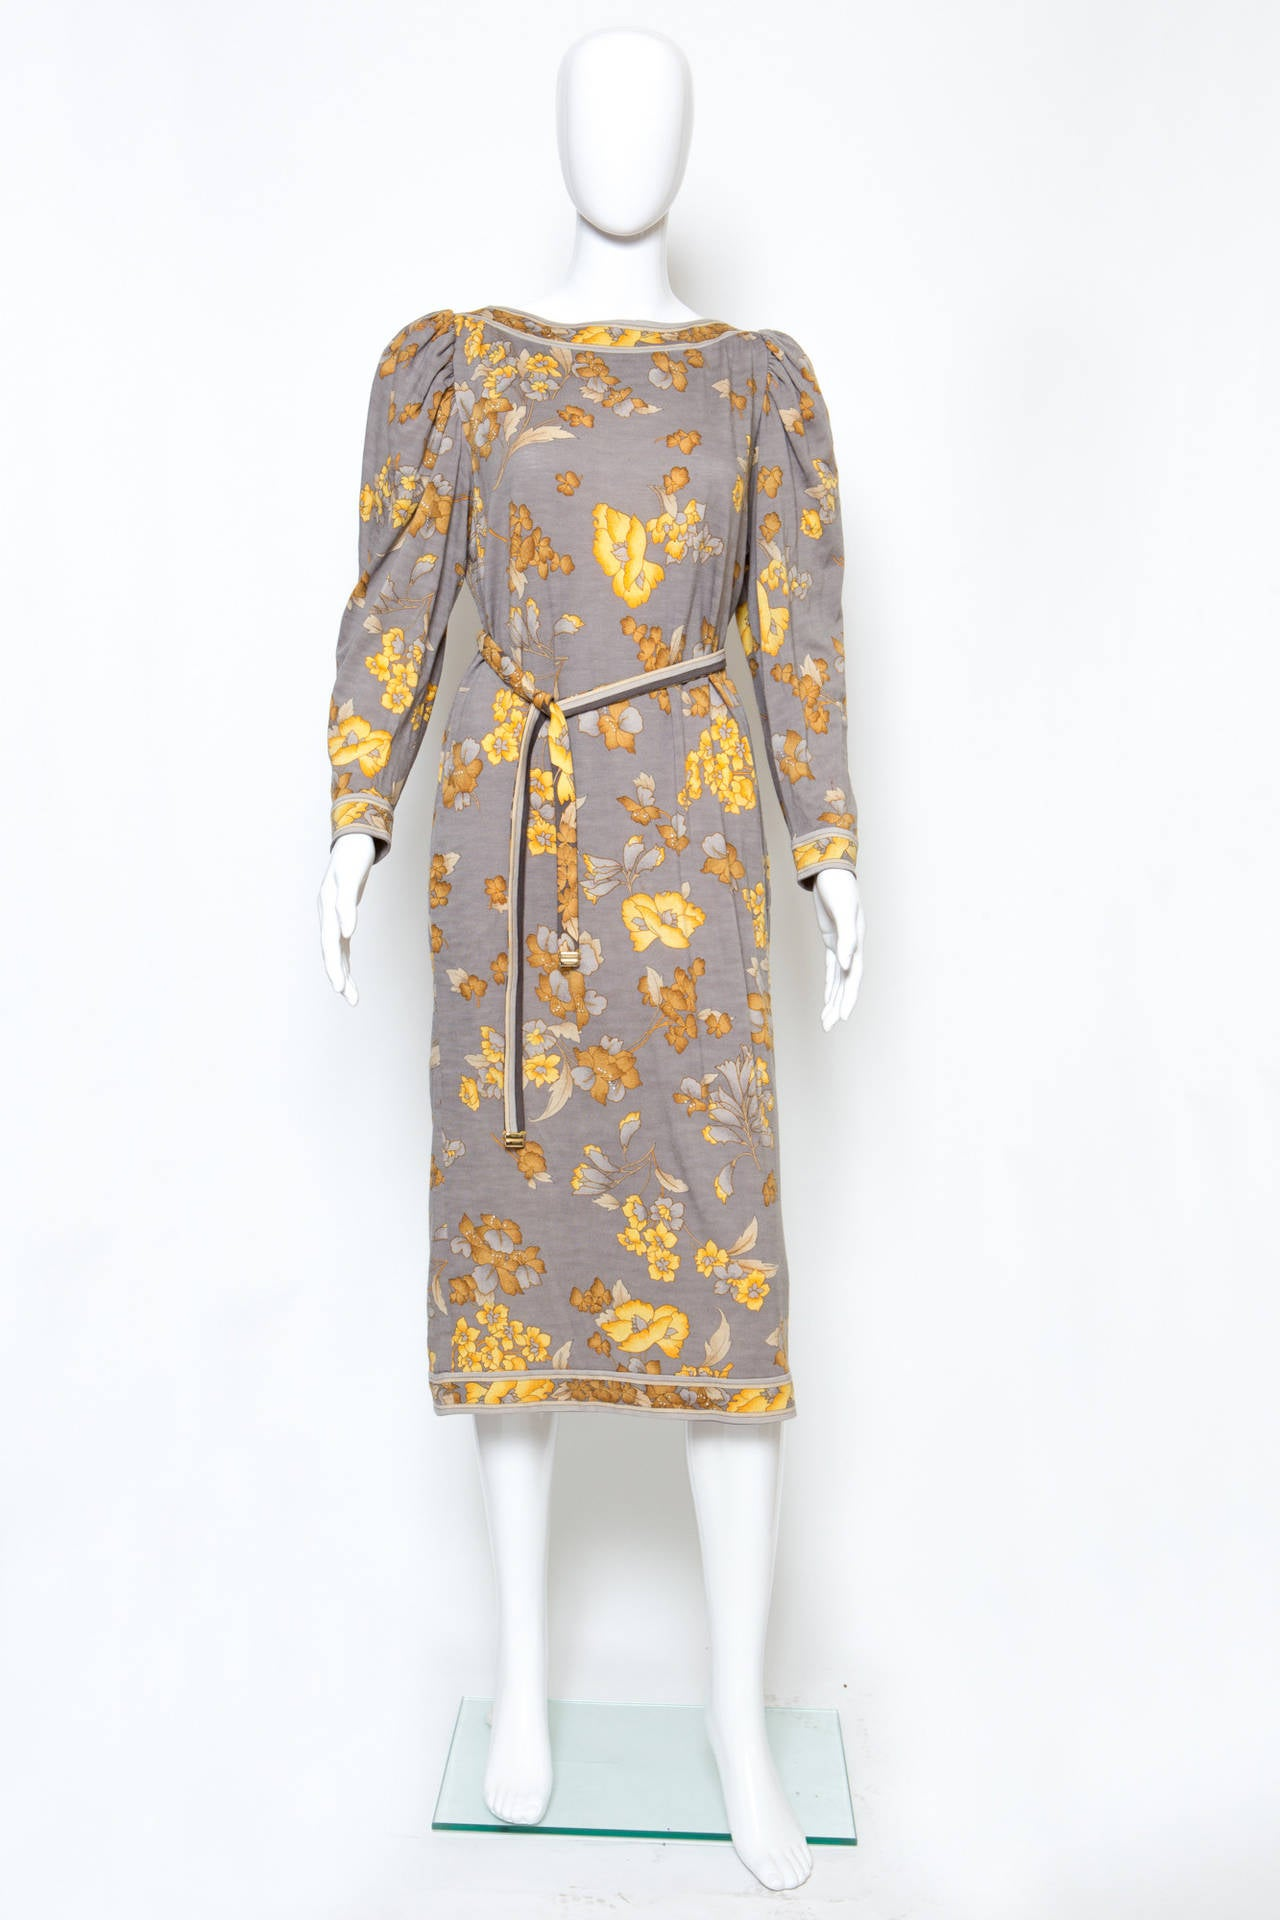 Amazing wool jersey dress from Leonard  featuring a flower print pattern in the ochre colors on a grey ground, long sleeves, flouncy top sleeves, side seams pockets, a seperated long belt with gold tone details edge with Leonard pitted on. The